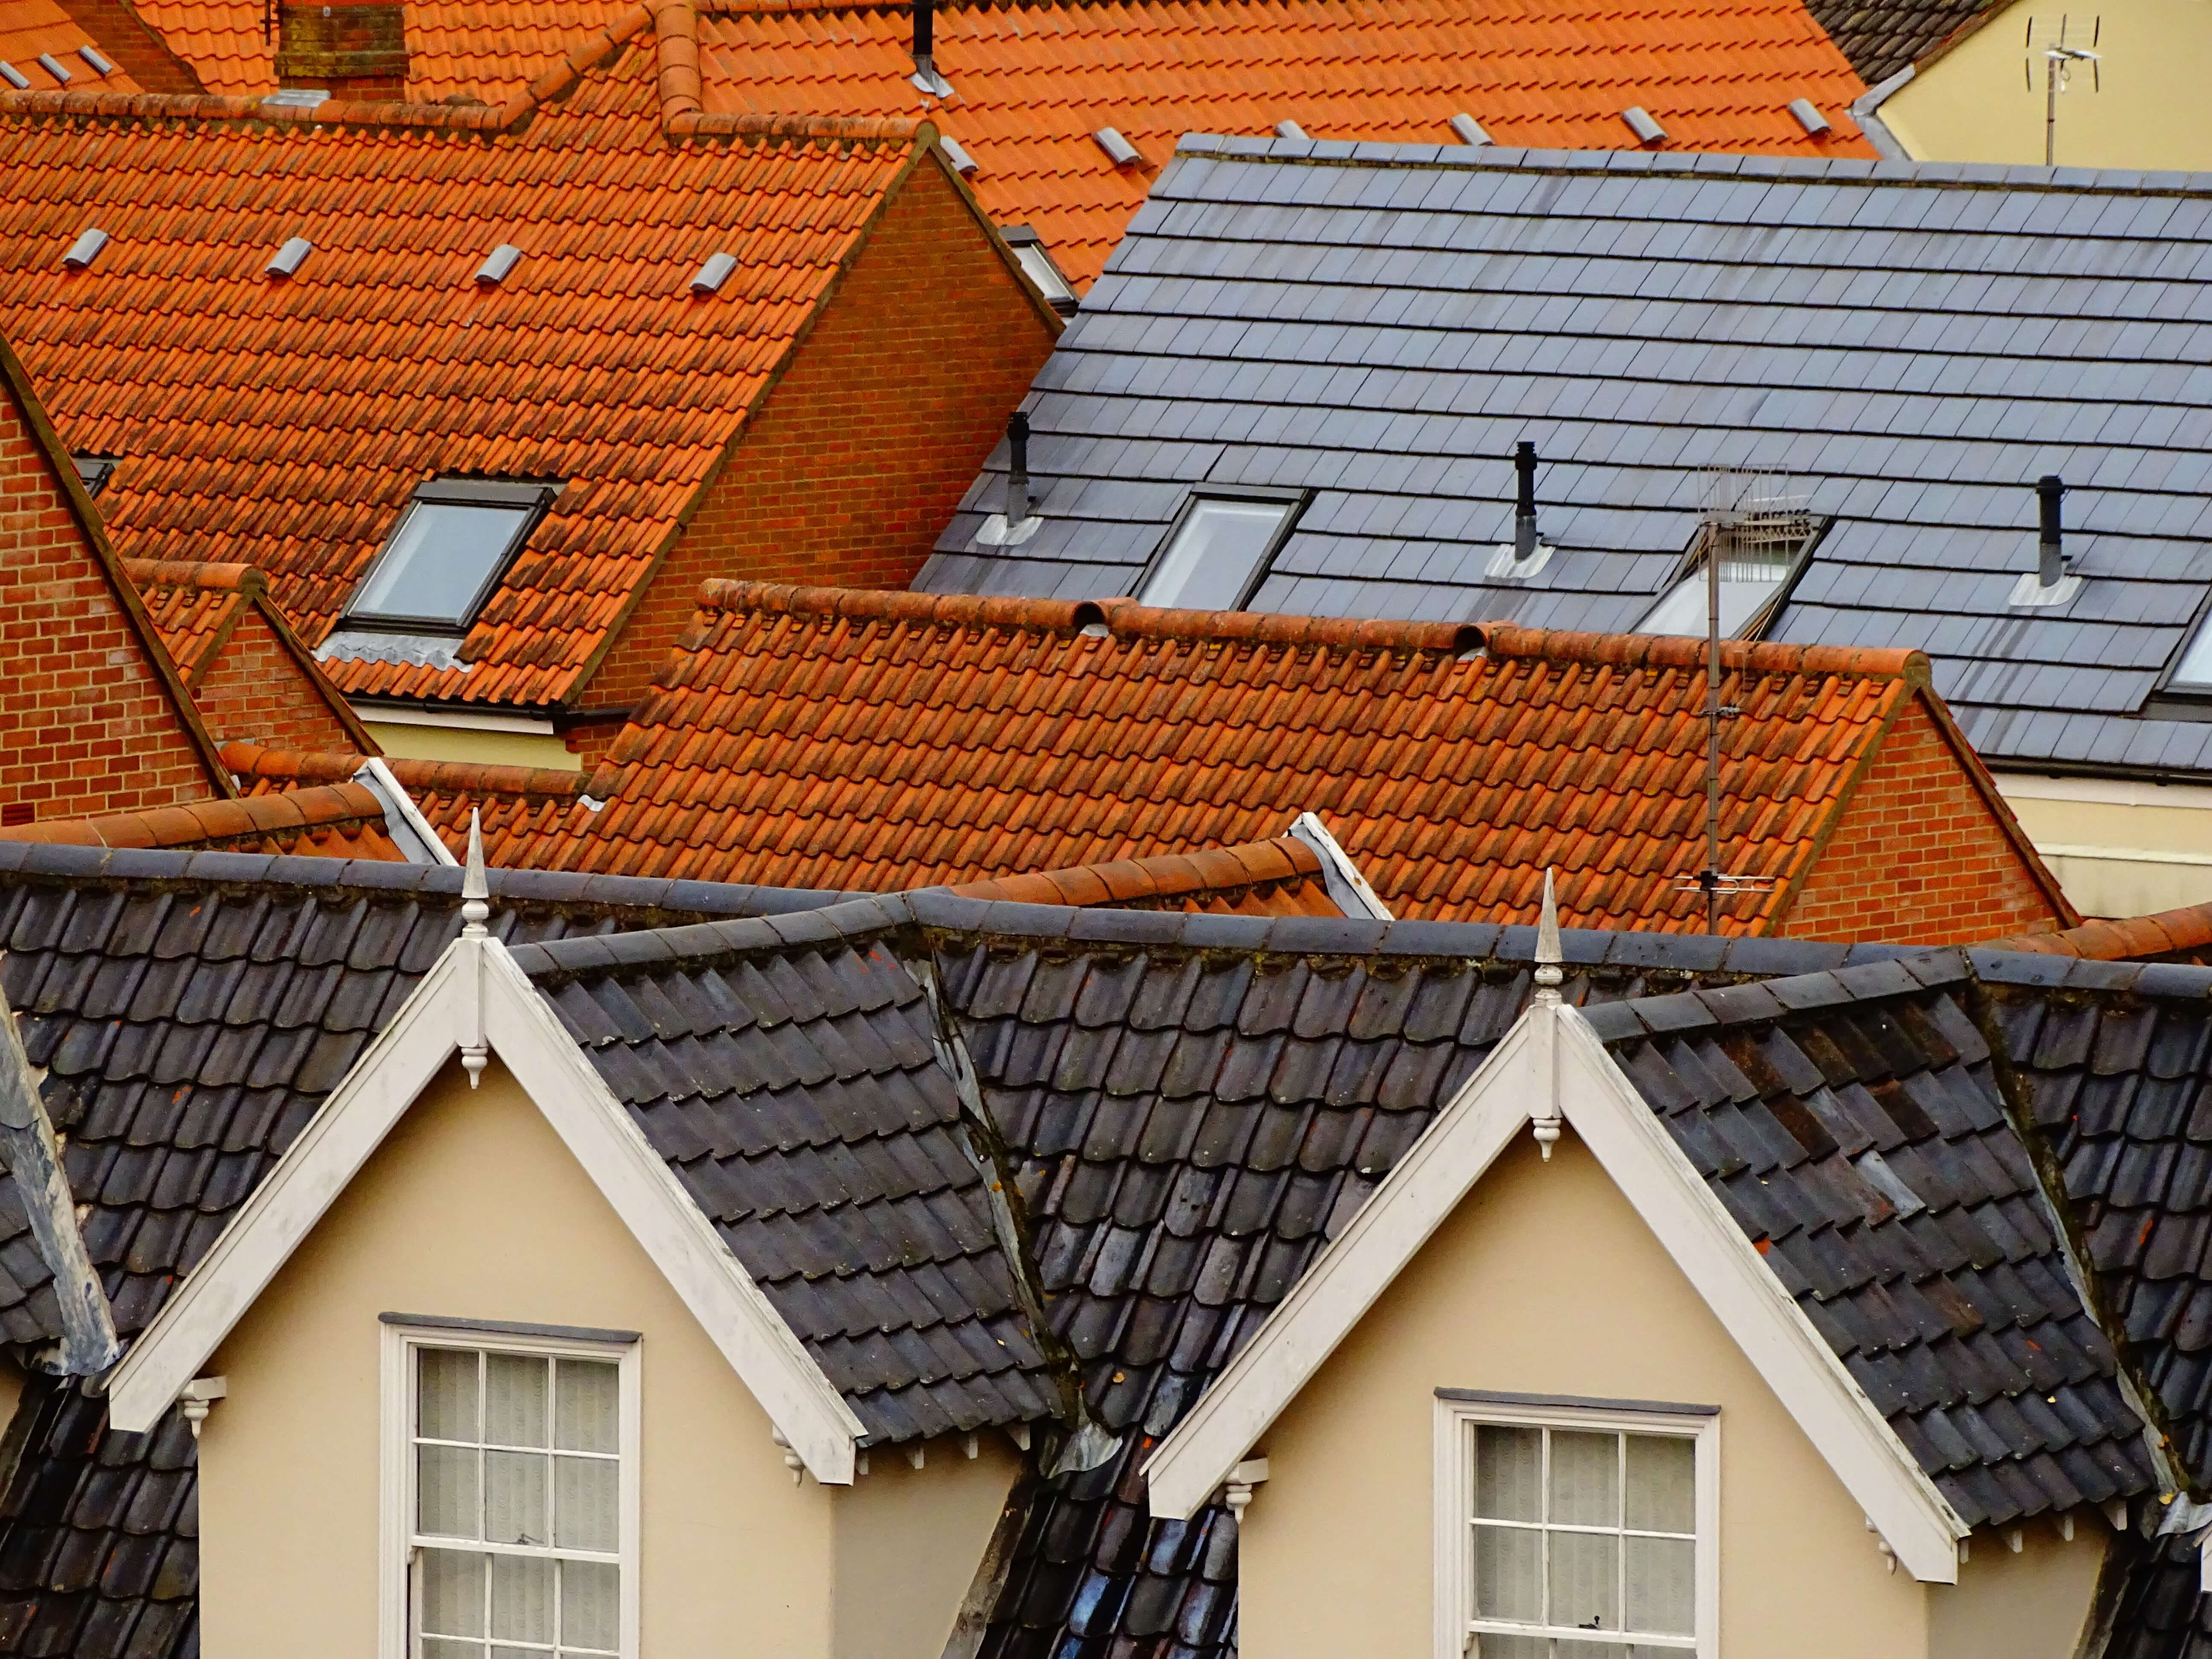 Velux windows for minimum pitch roofs - Sunlux Roof ...